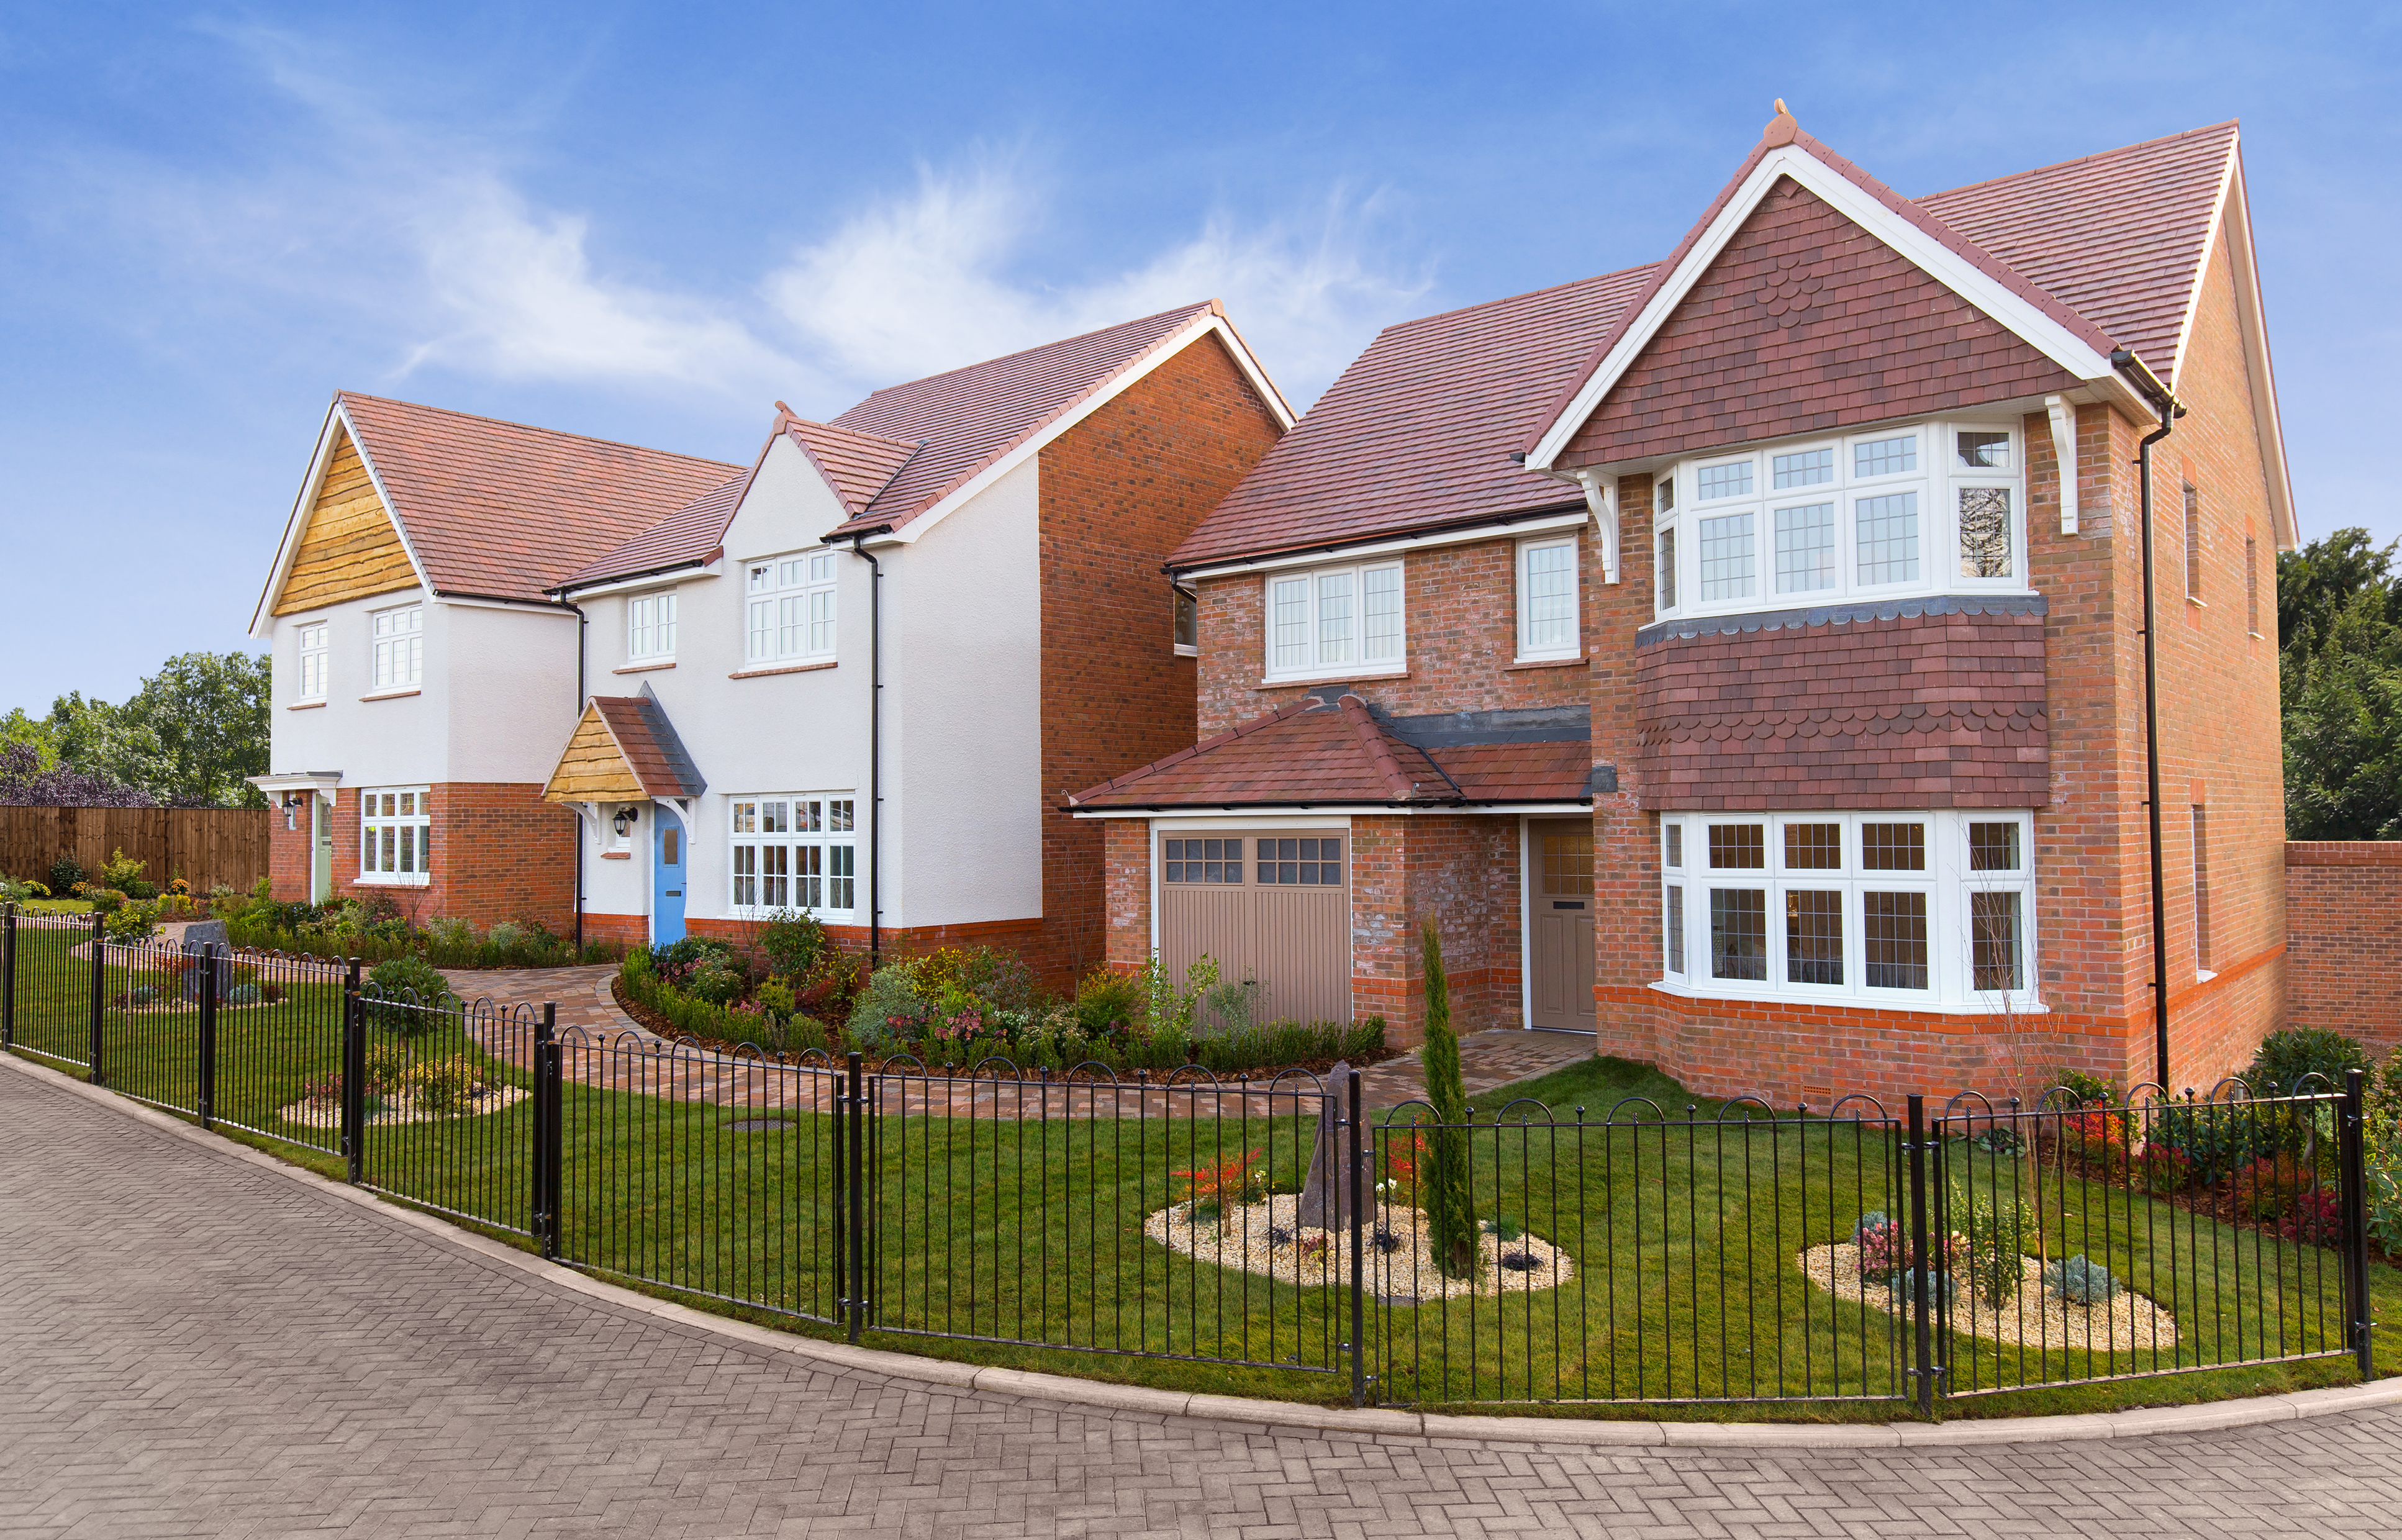 Redrow Homes Announce New Development At Abbey Farm Just